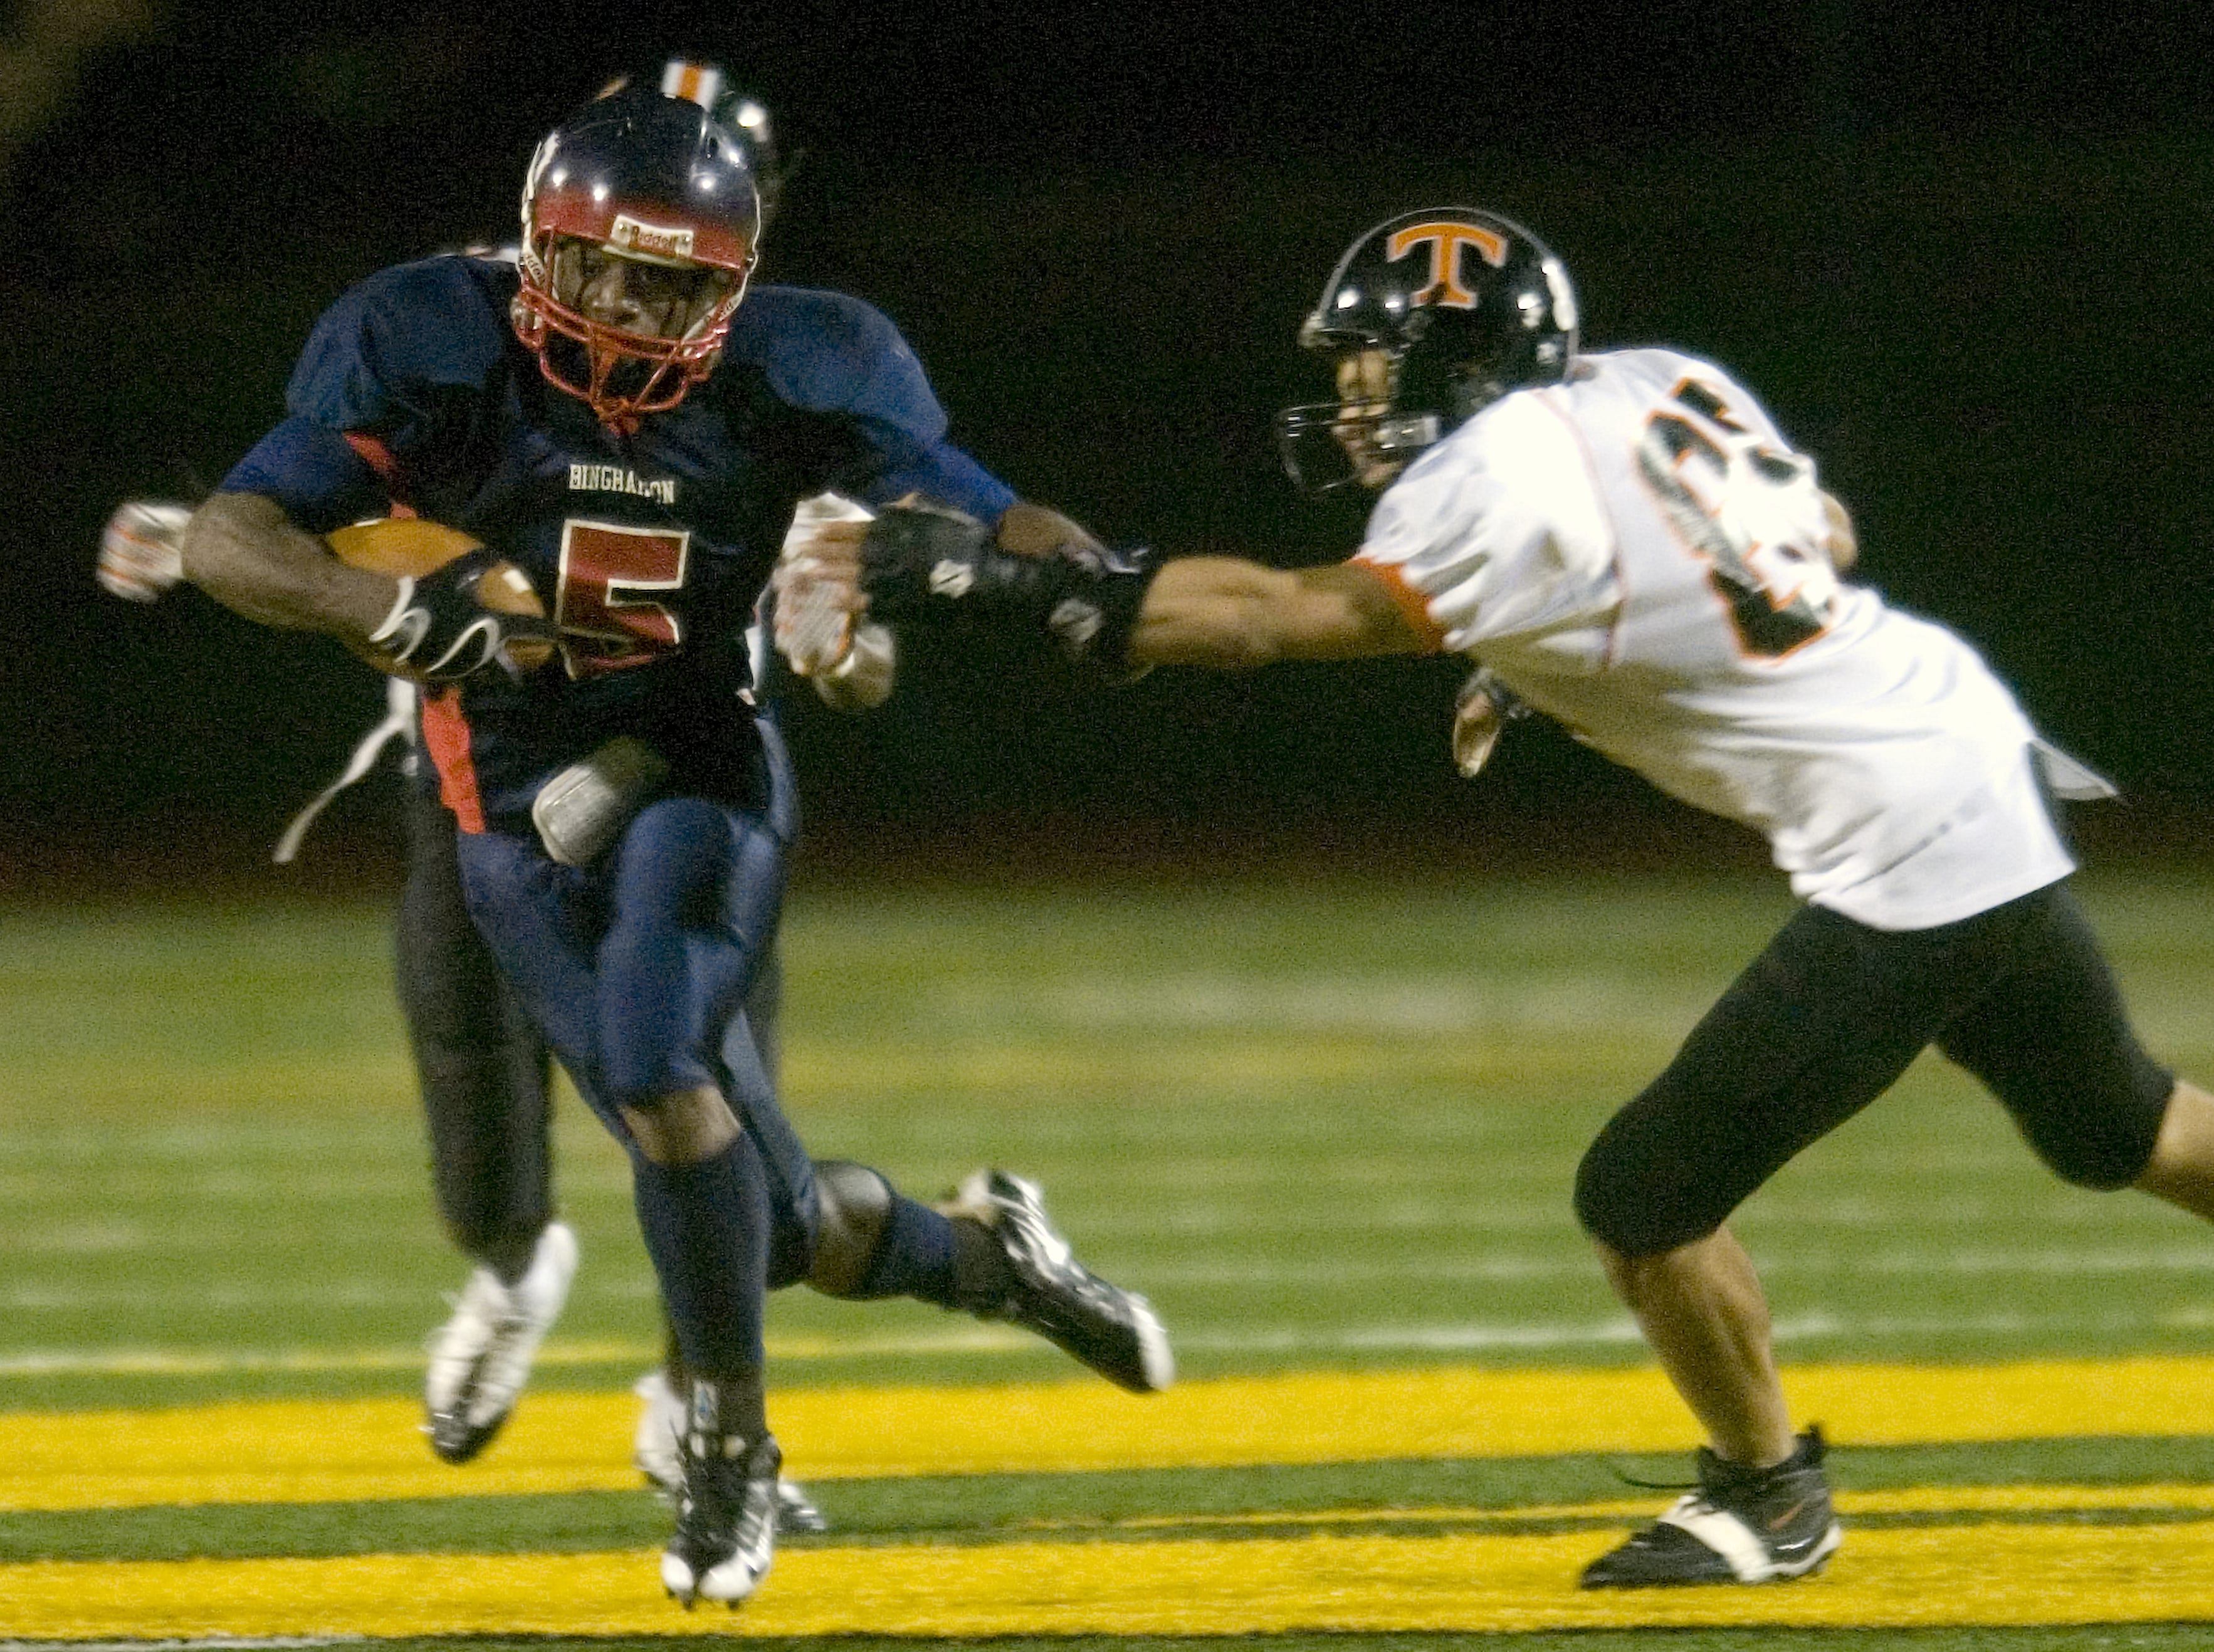 Binghamton's Jamar Smith, left, gets away from Union-Endicott's Matt Stanley in the second quarter of a 2008 game at Dick Hoover Stadium.